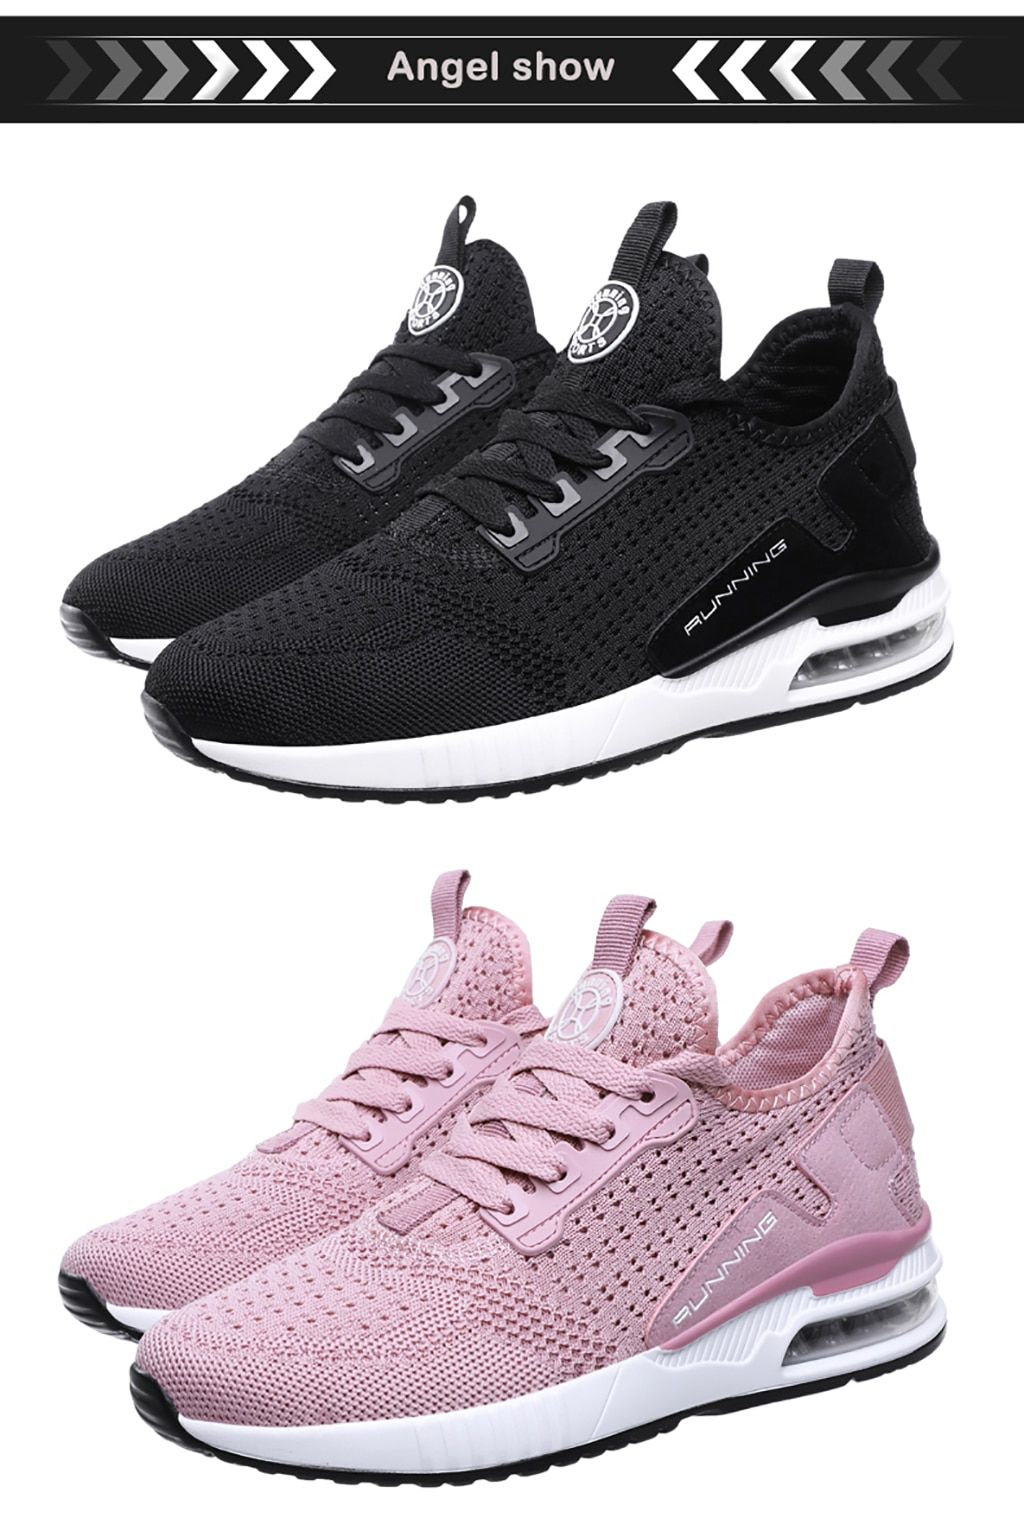 Couple Fly Weave AirCushion Casual Shoes in 2020 Casual